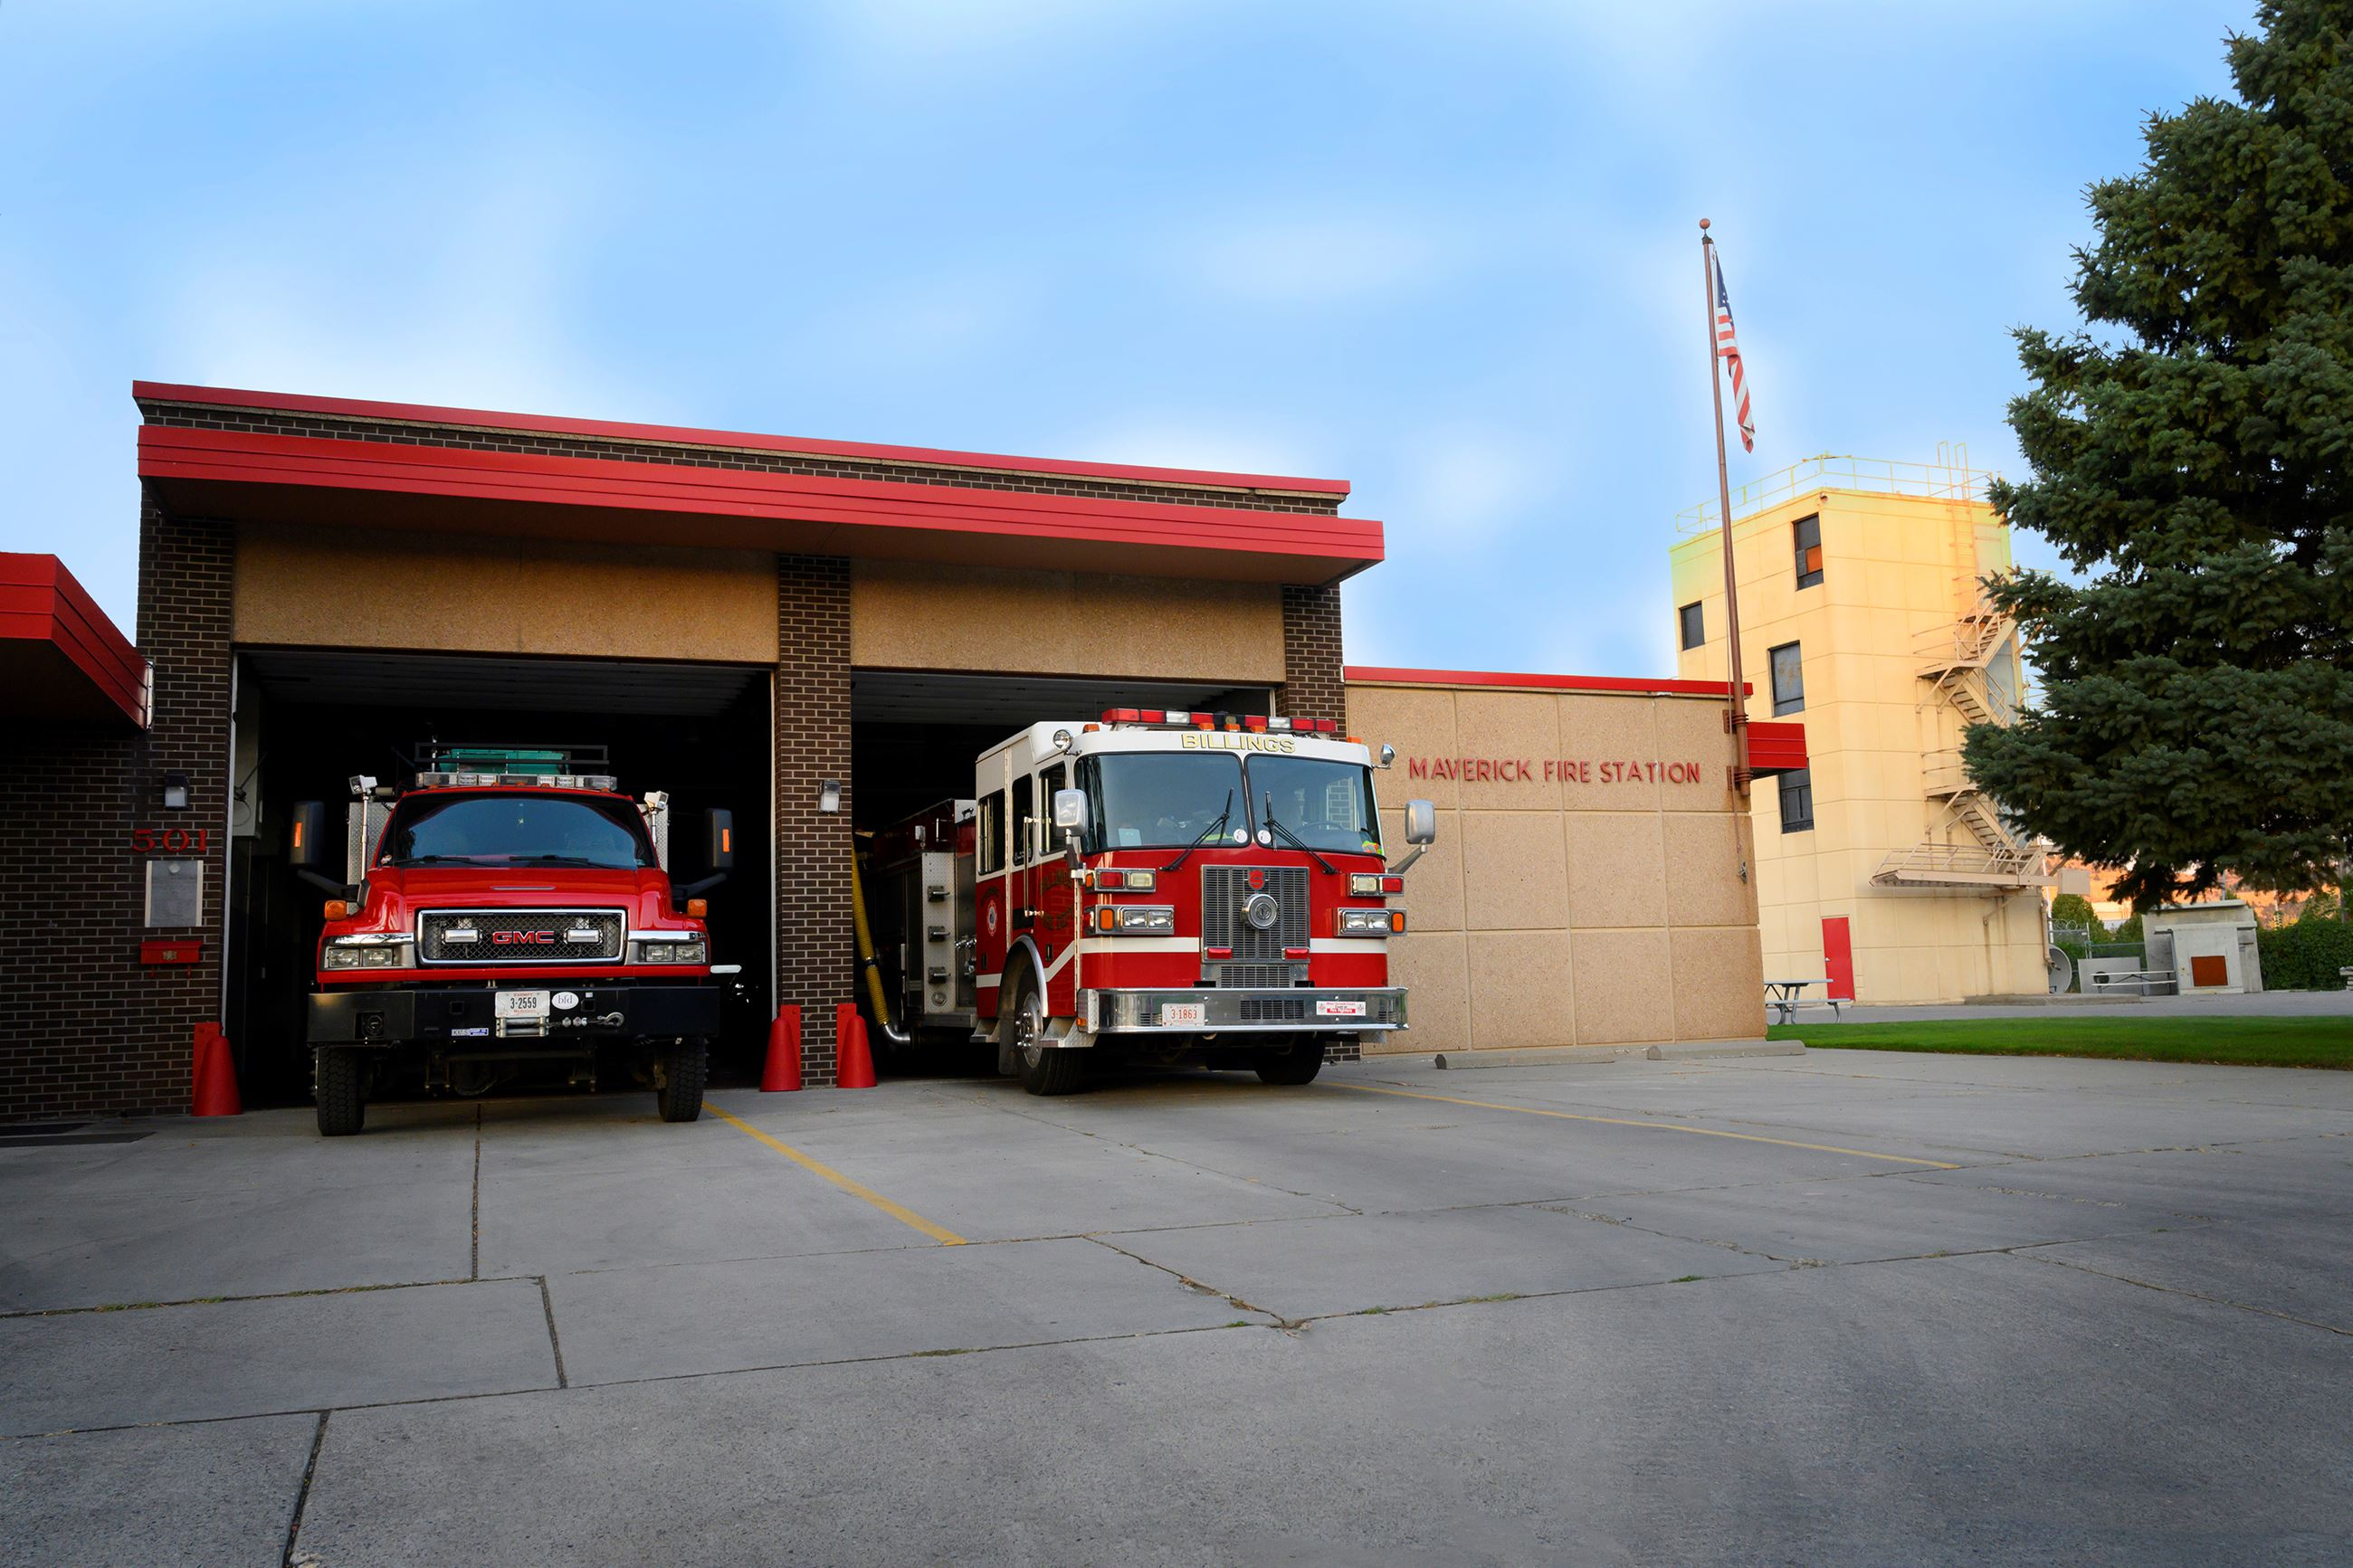 Fire Station 2 with apparatus on the ramp